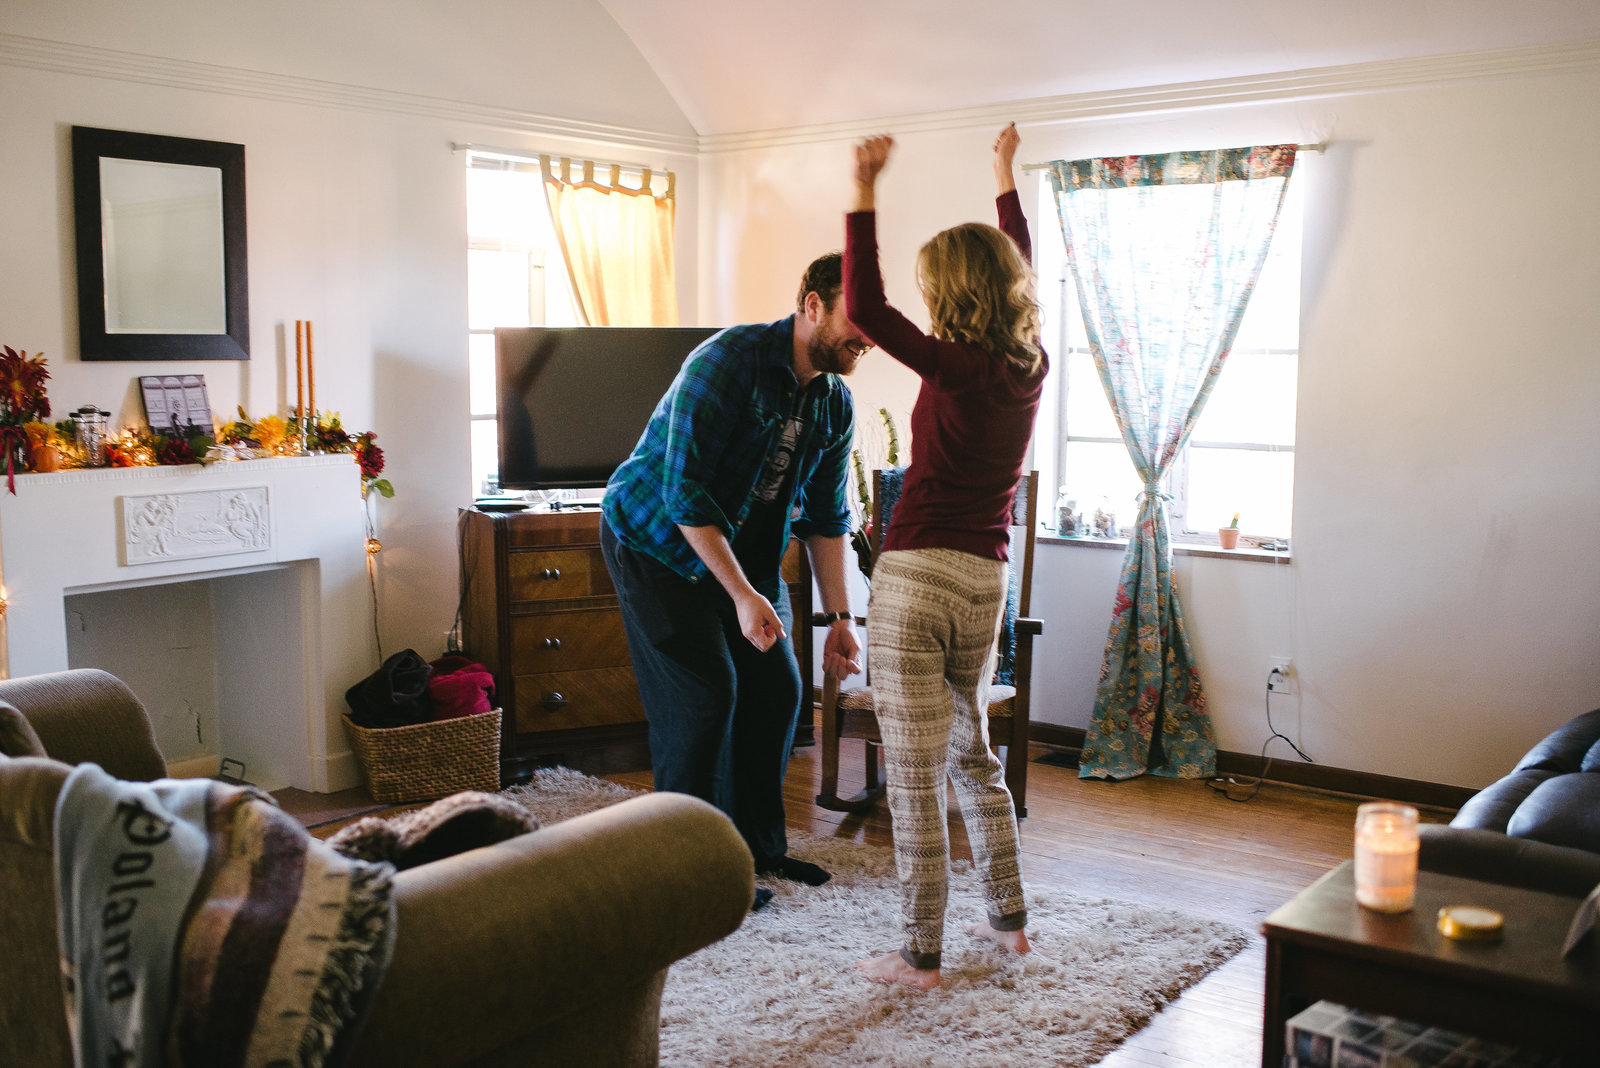 Columbus OH couple dancing in living room in pajamas